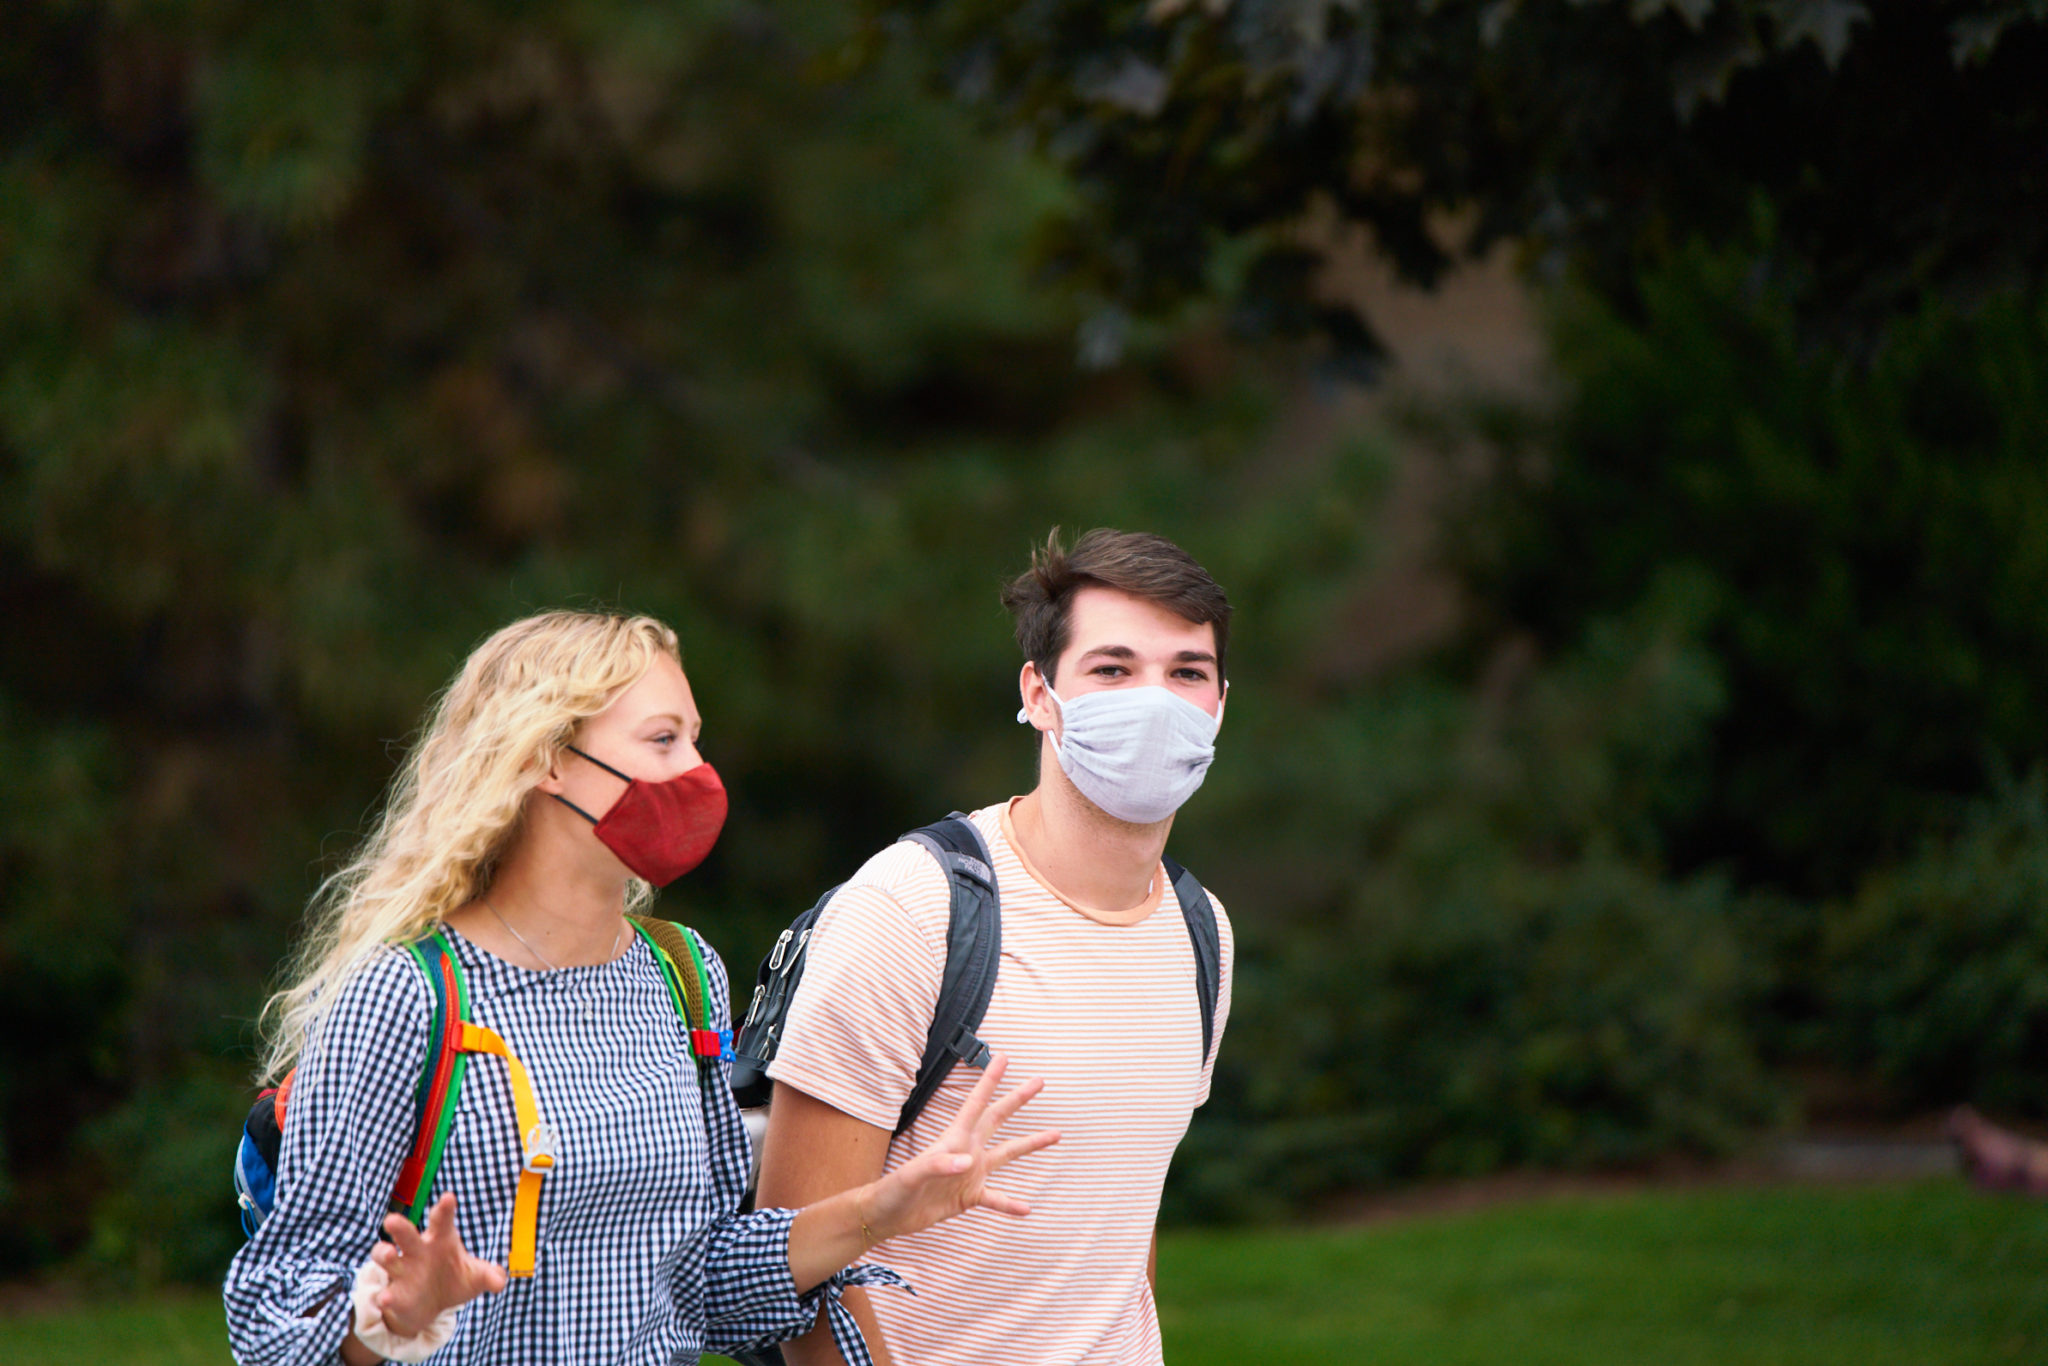 Public health professors say social distancing isn't just for campus